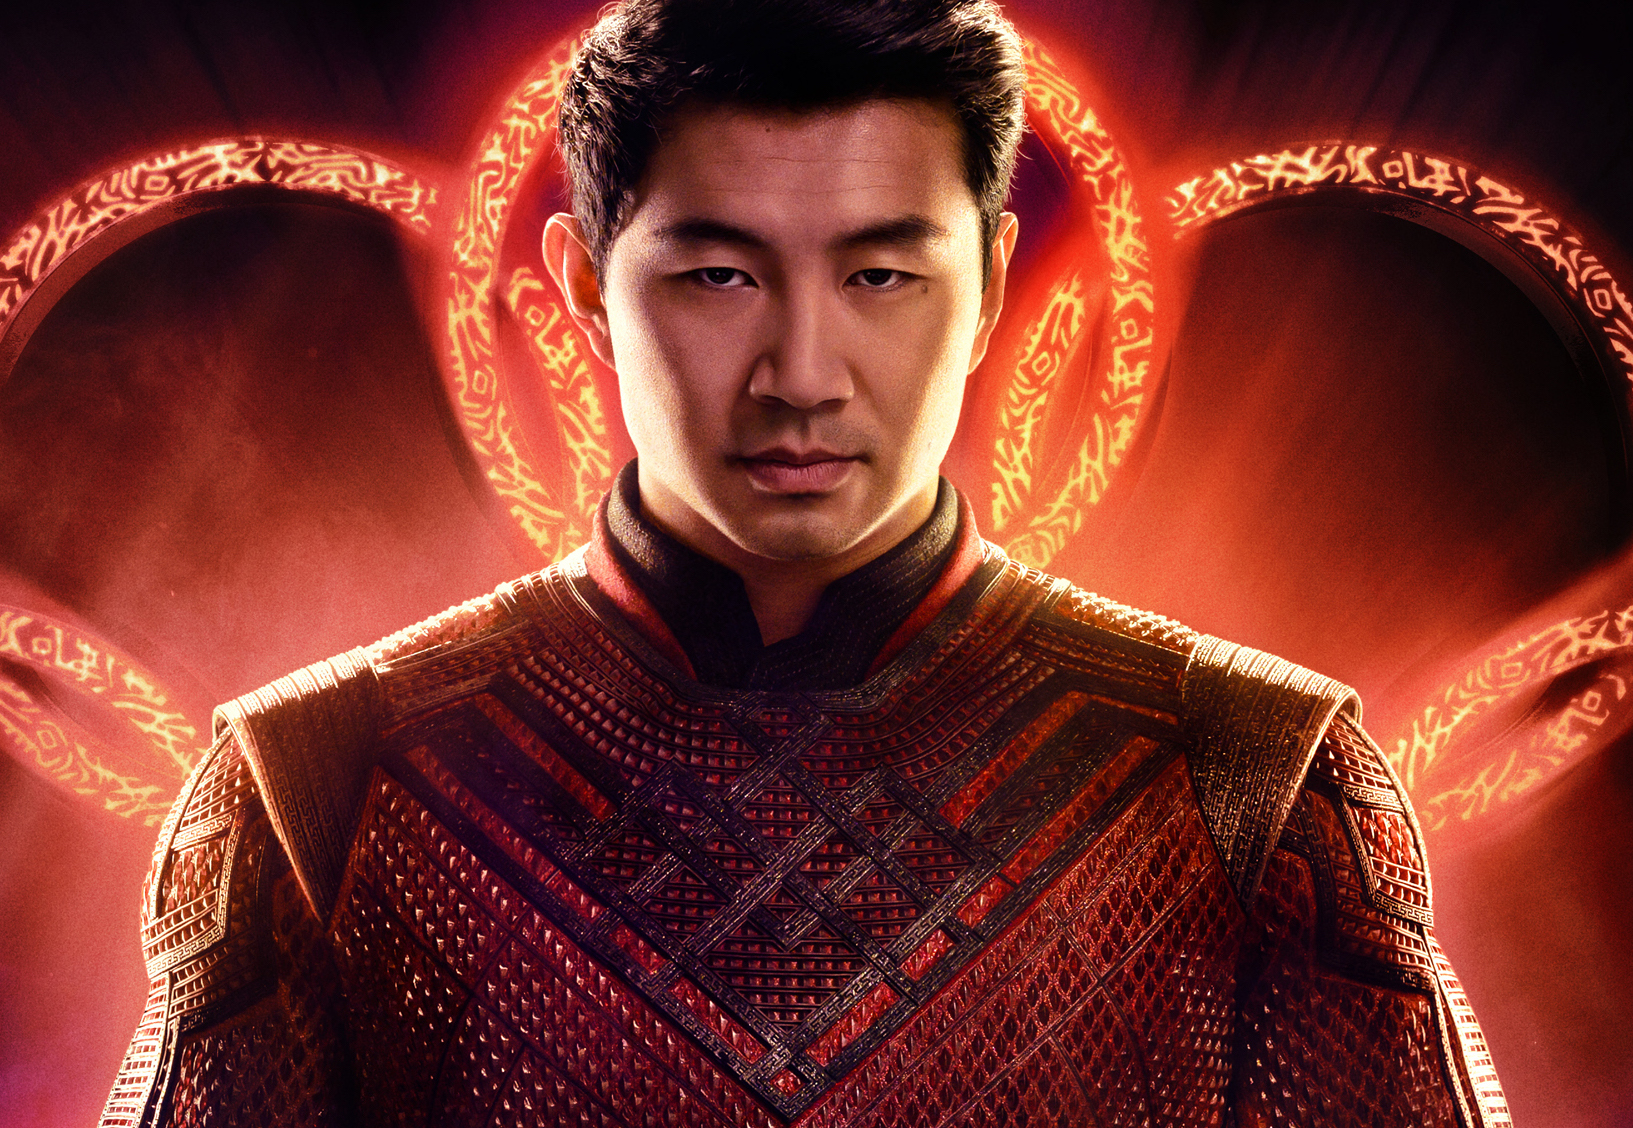 Shang-Chi from the movies